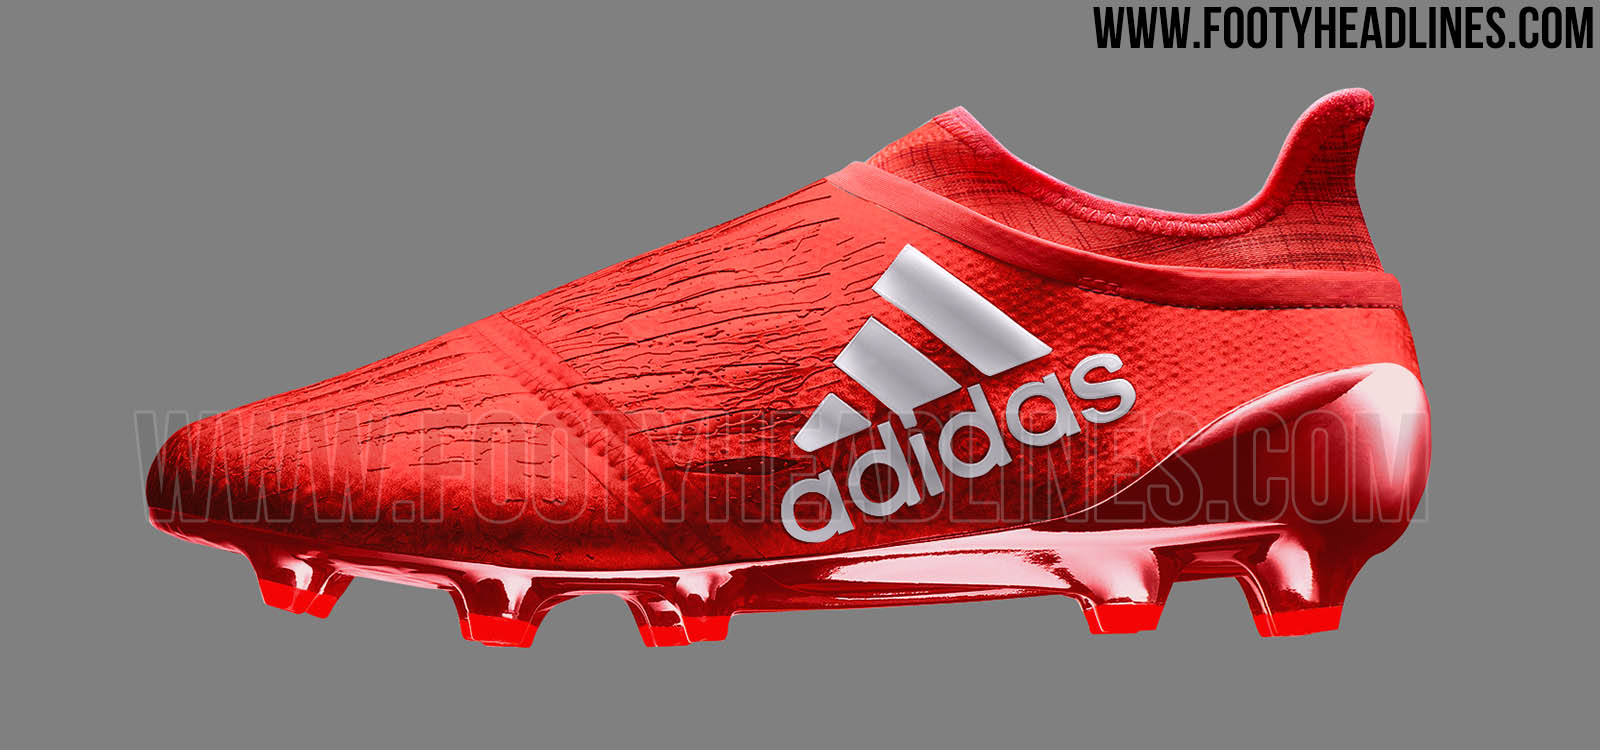 red adidas x 16 purechaos 2016 boots leaked footy headlines. Black Bedroom Furniture Sets. Home Design Ideas